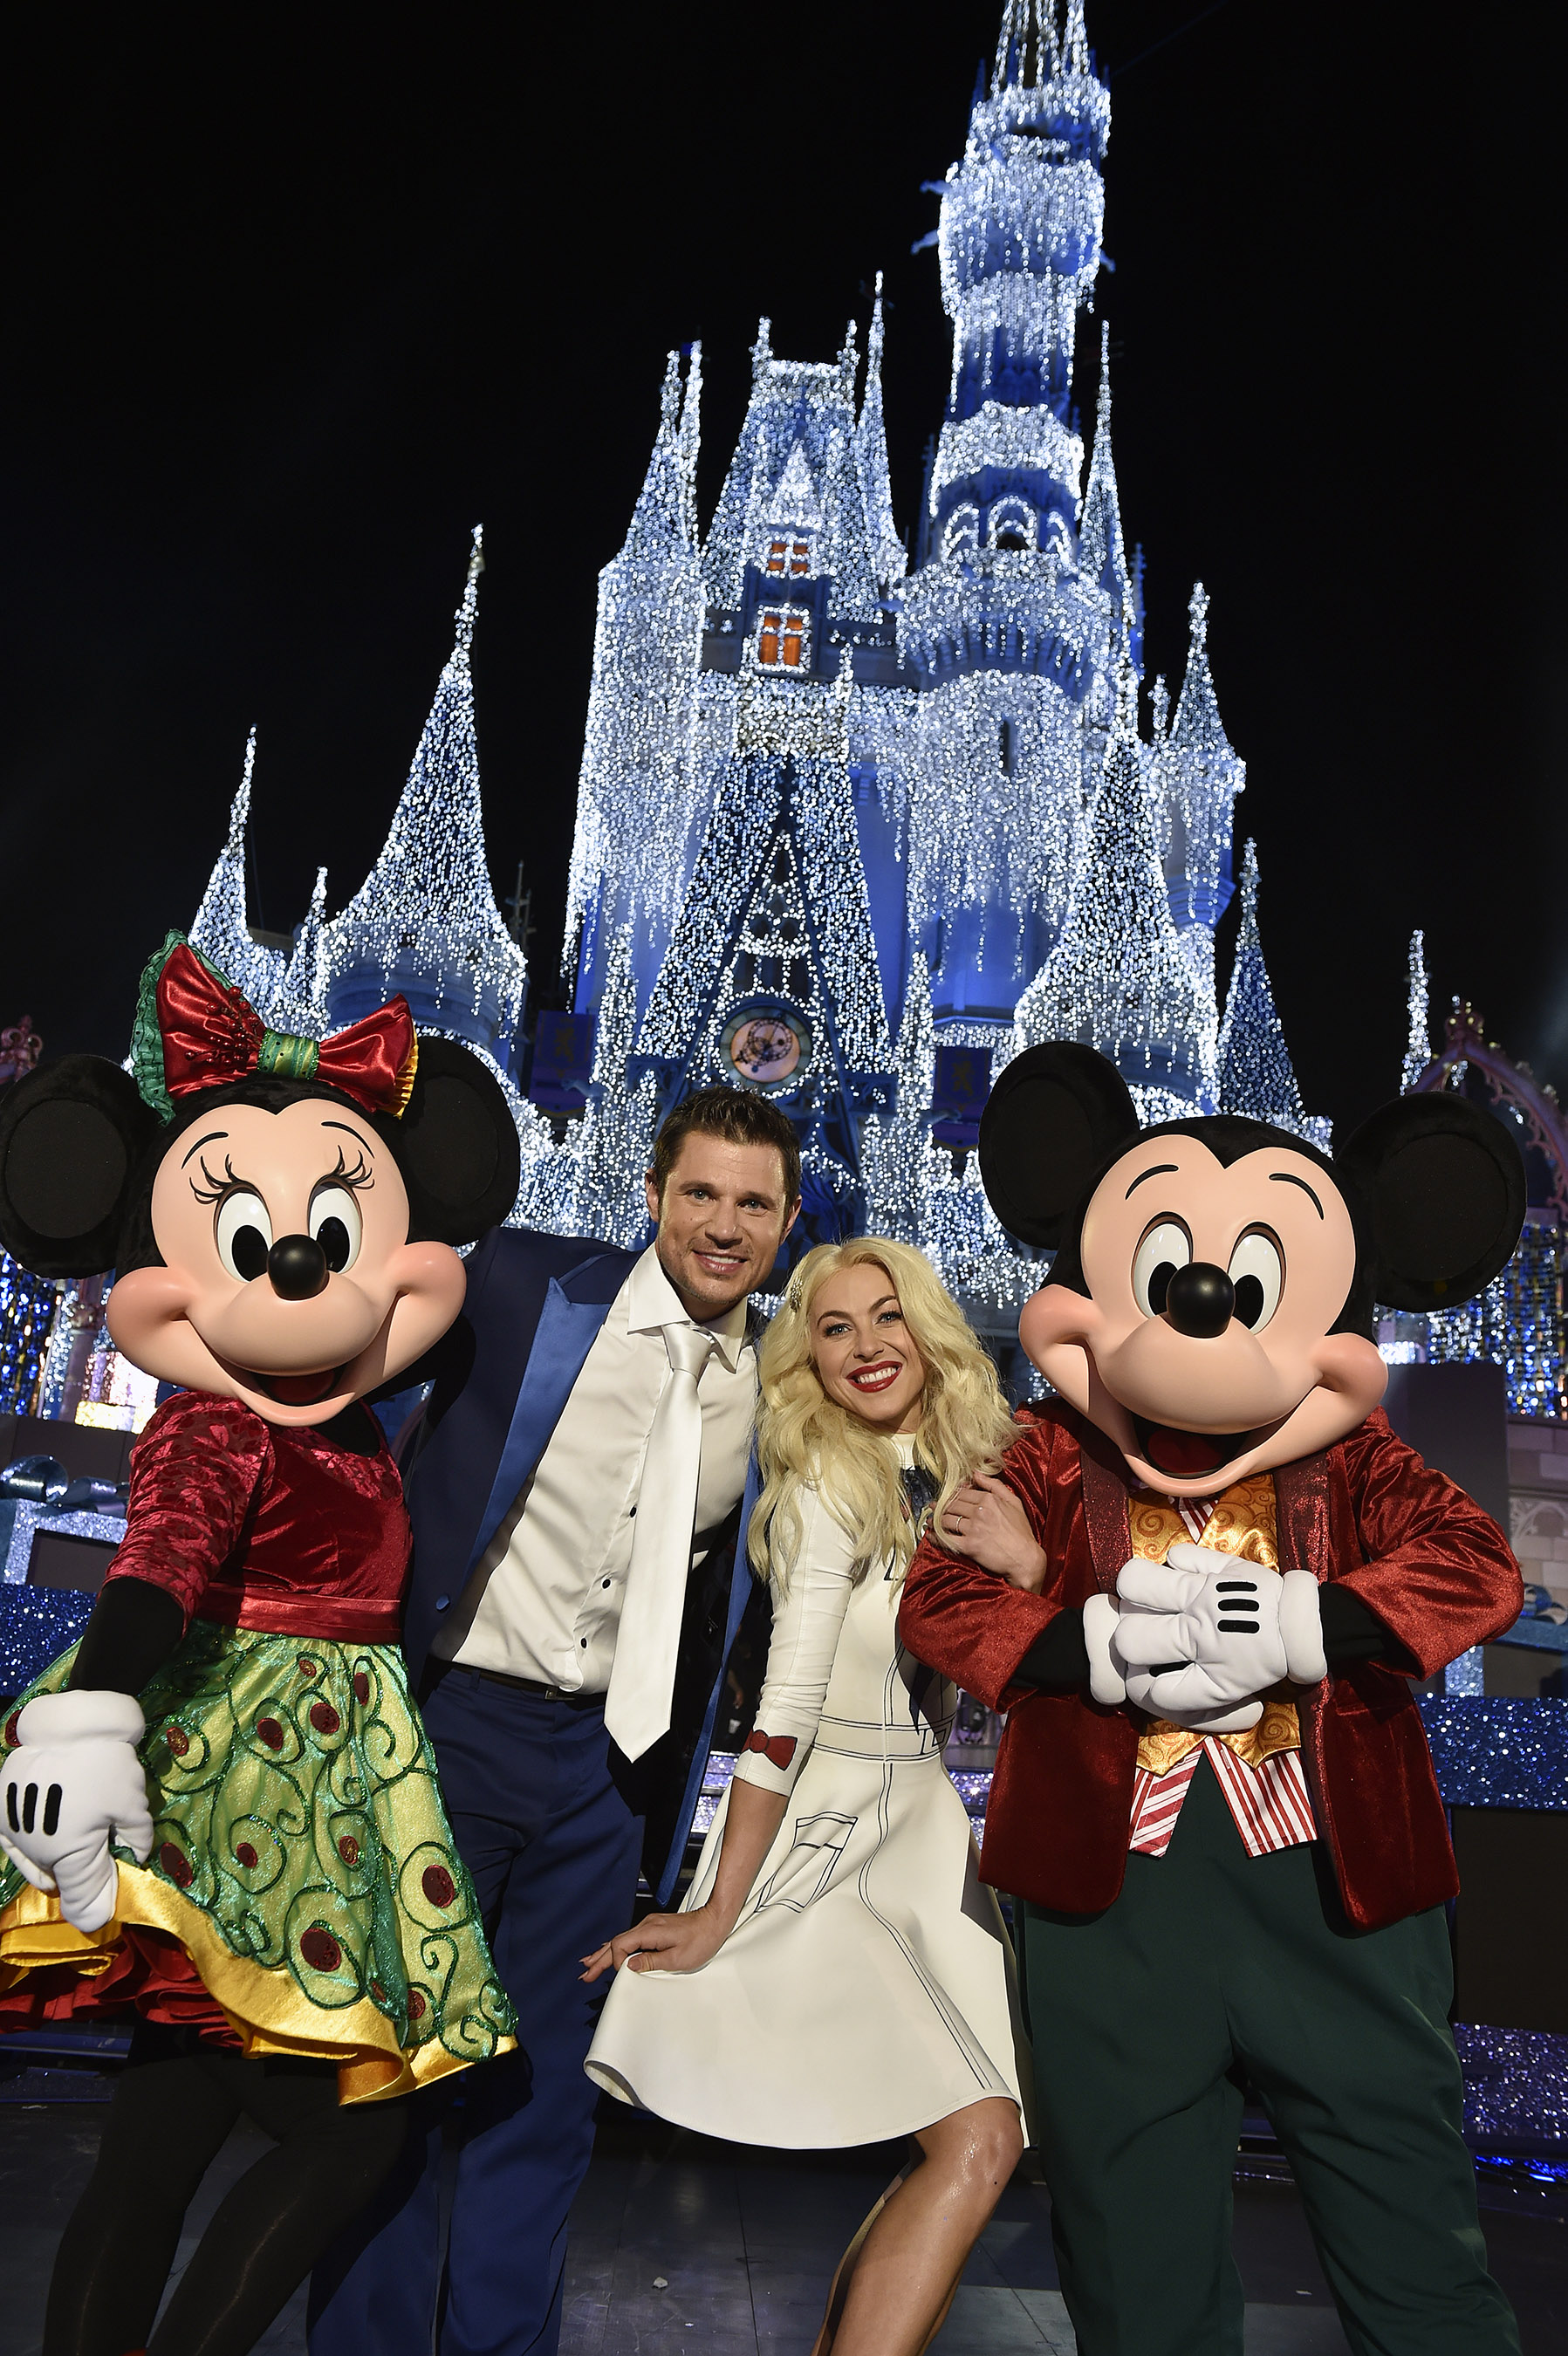 julianne hough and nick lachey pose with mickey mouse and minnie mouse at magic kingdom park